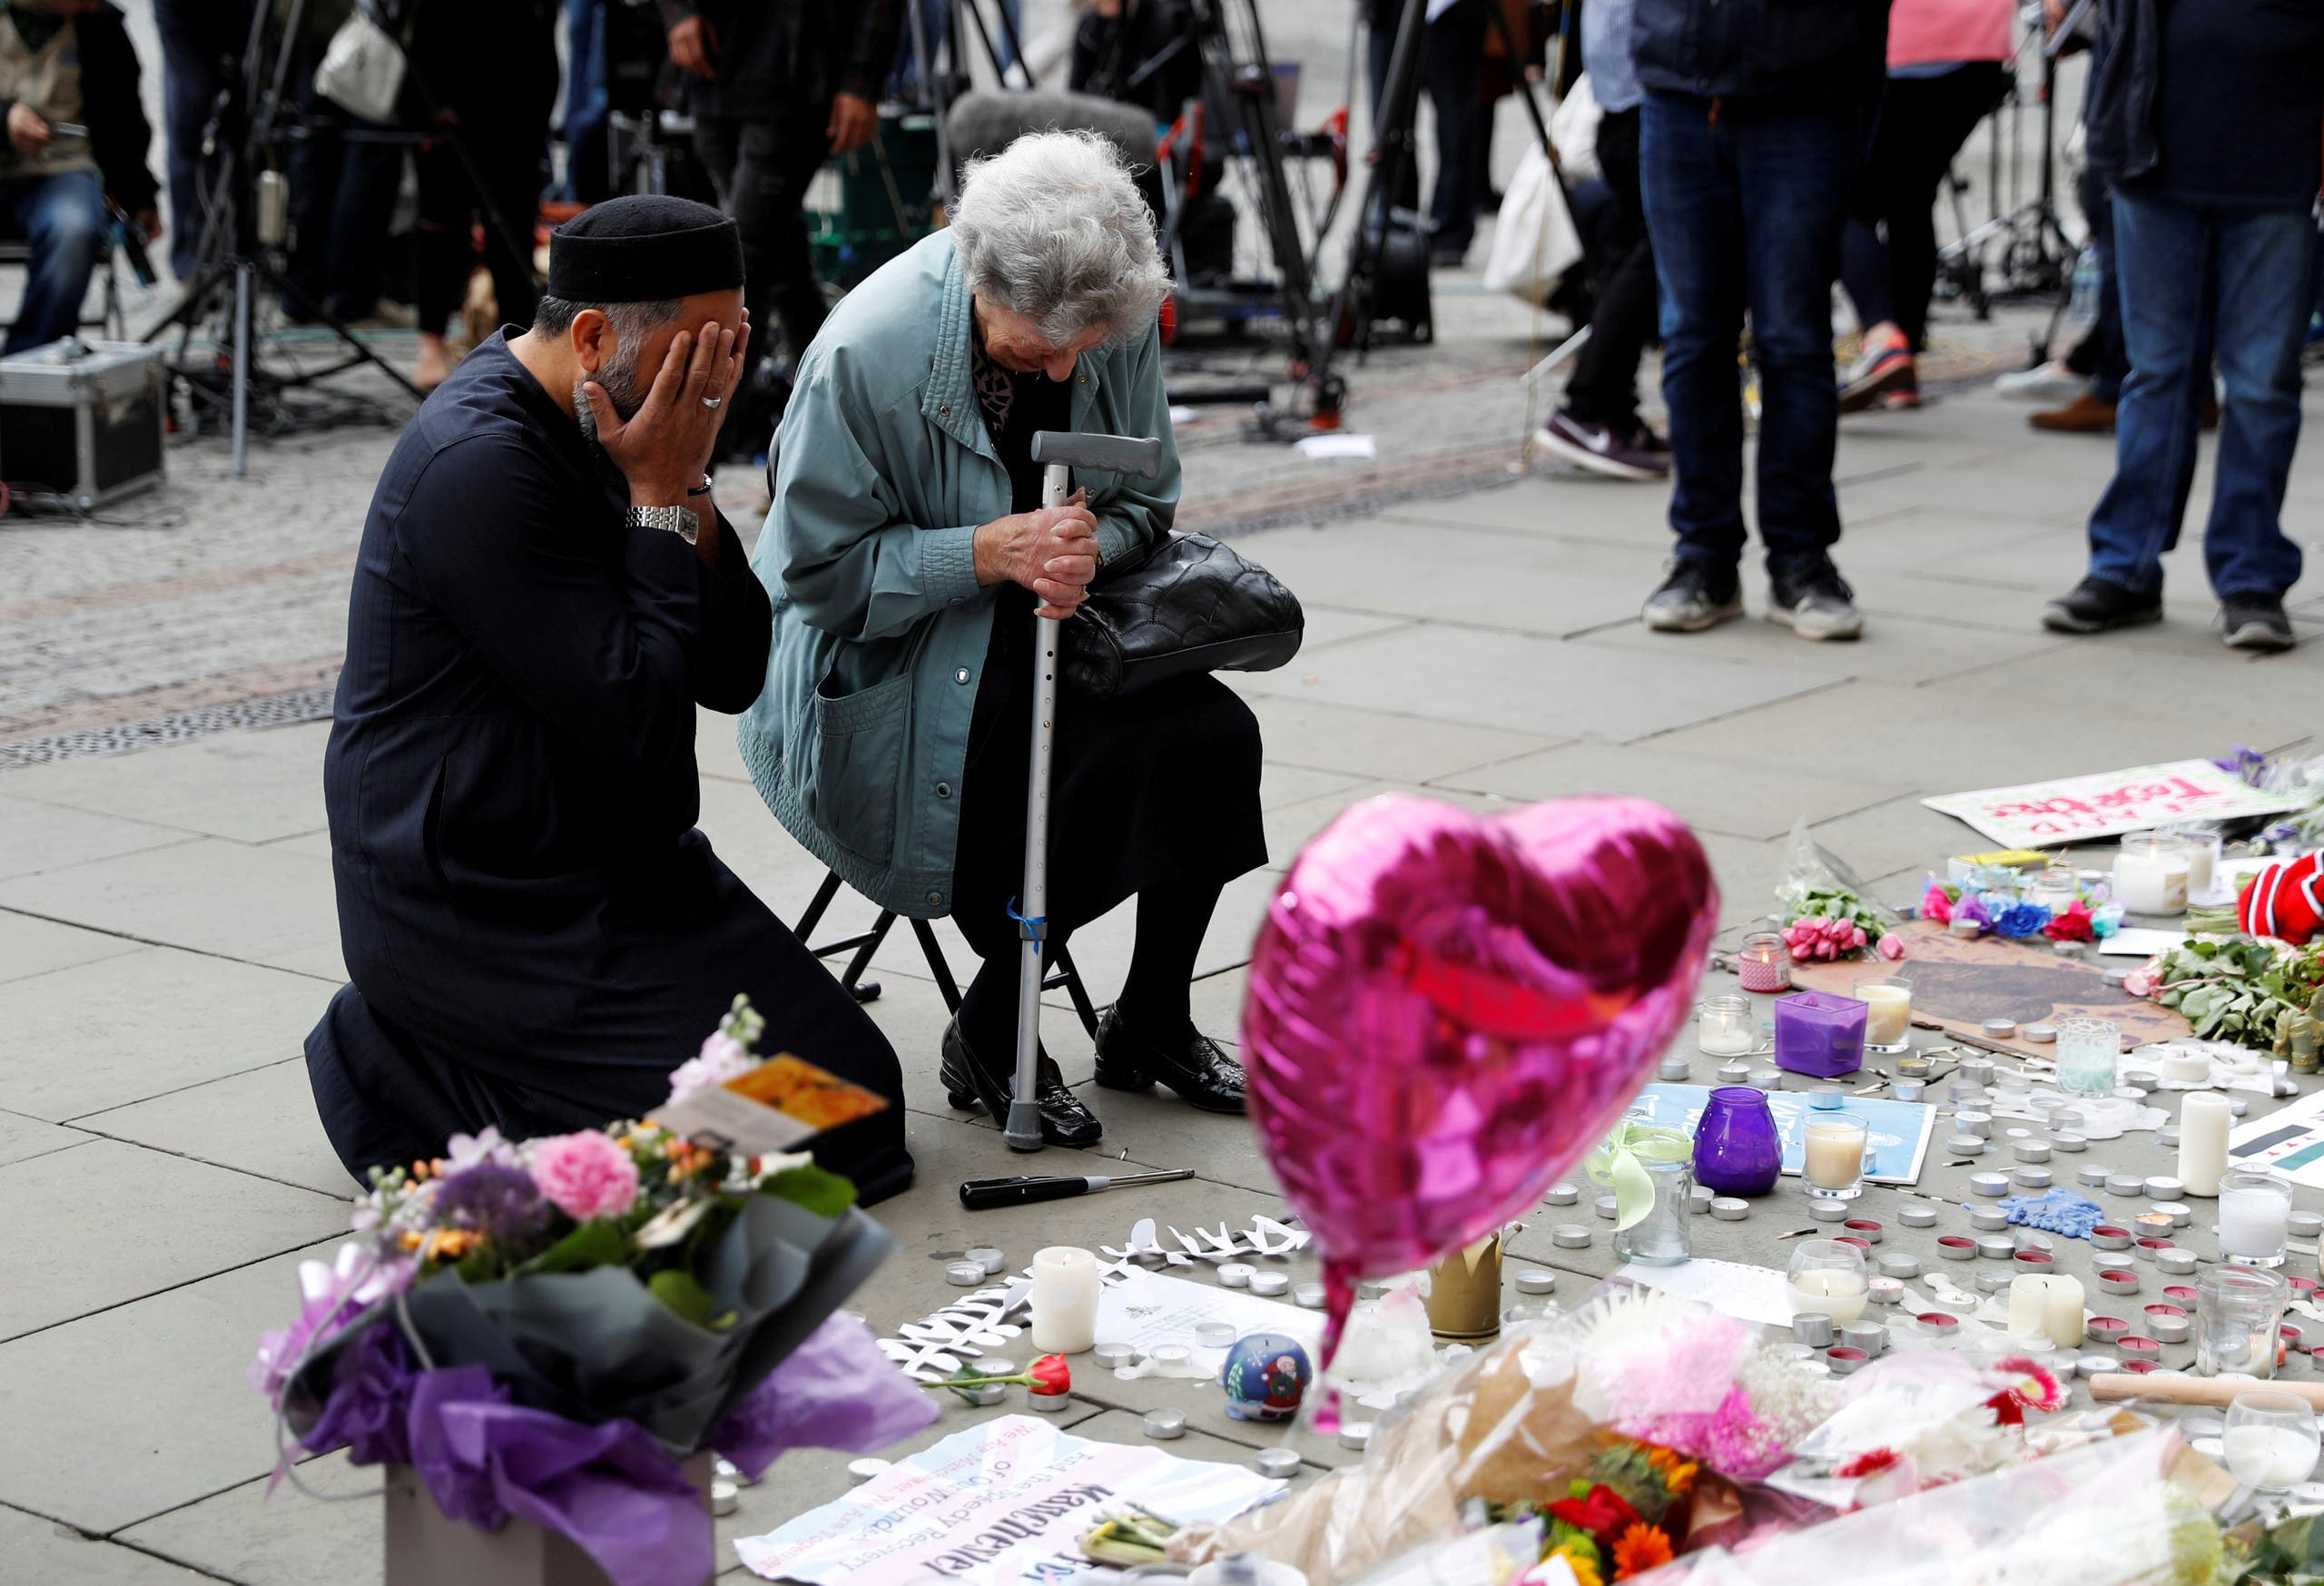 A Jewish woman named Renee Rachel Black and a Muslim man named Sadiq Patel react next to floral tributes in Albert Square in Manchester, Britain May 24, 2017. (Reuters)